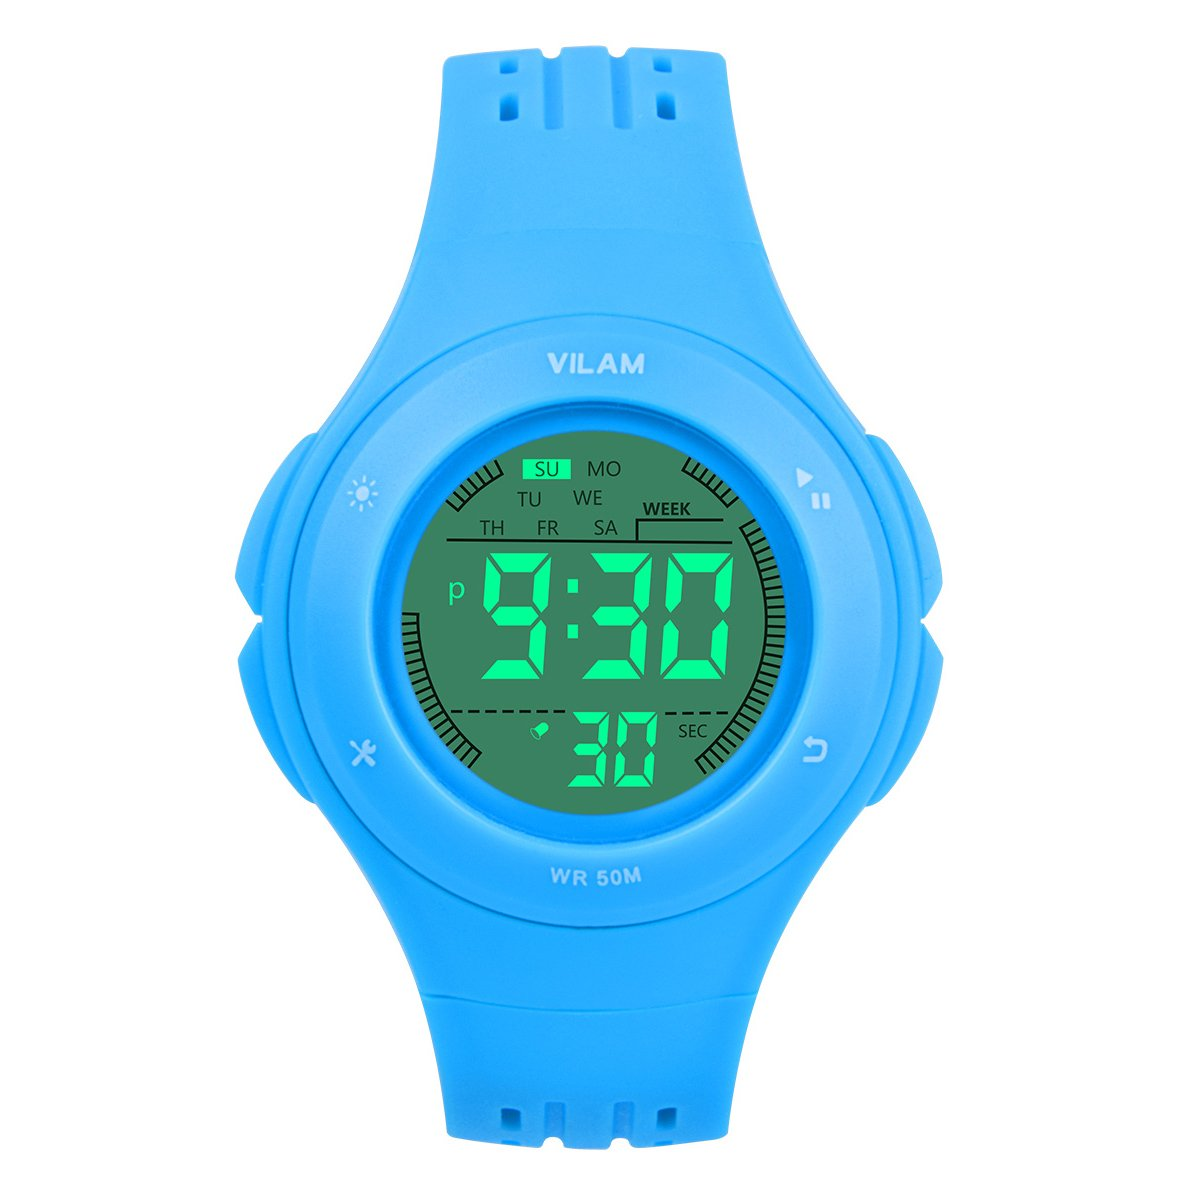 Kids Watch Waterproof Children Electronic Watch - Lighting Watch 50M Waterproof for Outdoor Sports,LED Digital Stopwatch with Chronograph, Alarm, Child Wrist Watch for Boys, Girls - PerSuper (Blue) by PERSUPER